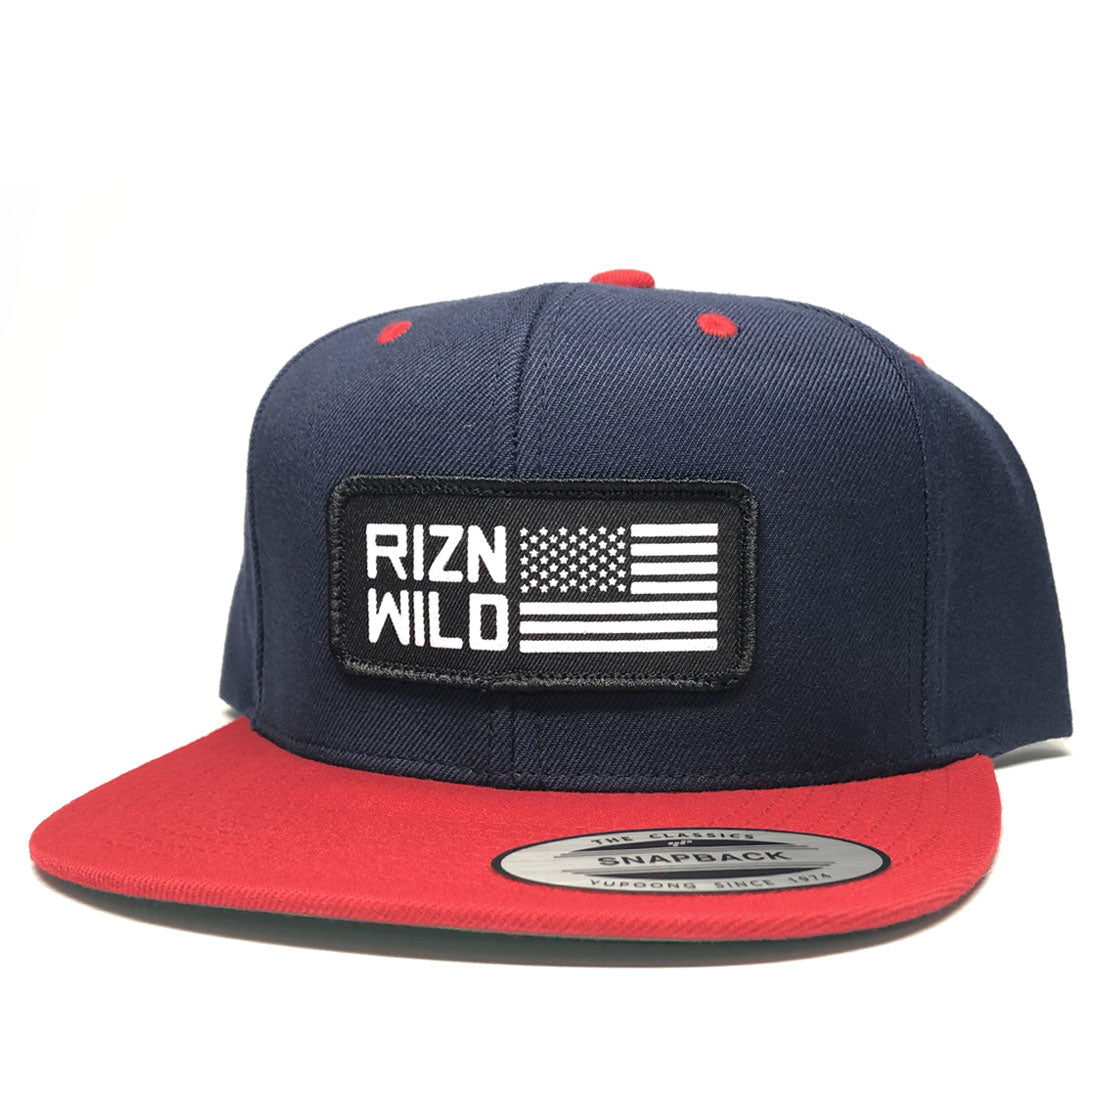 RIZNWILD | Snapback hat red, white, and blue american flag patch